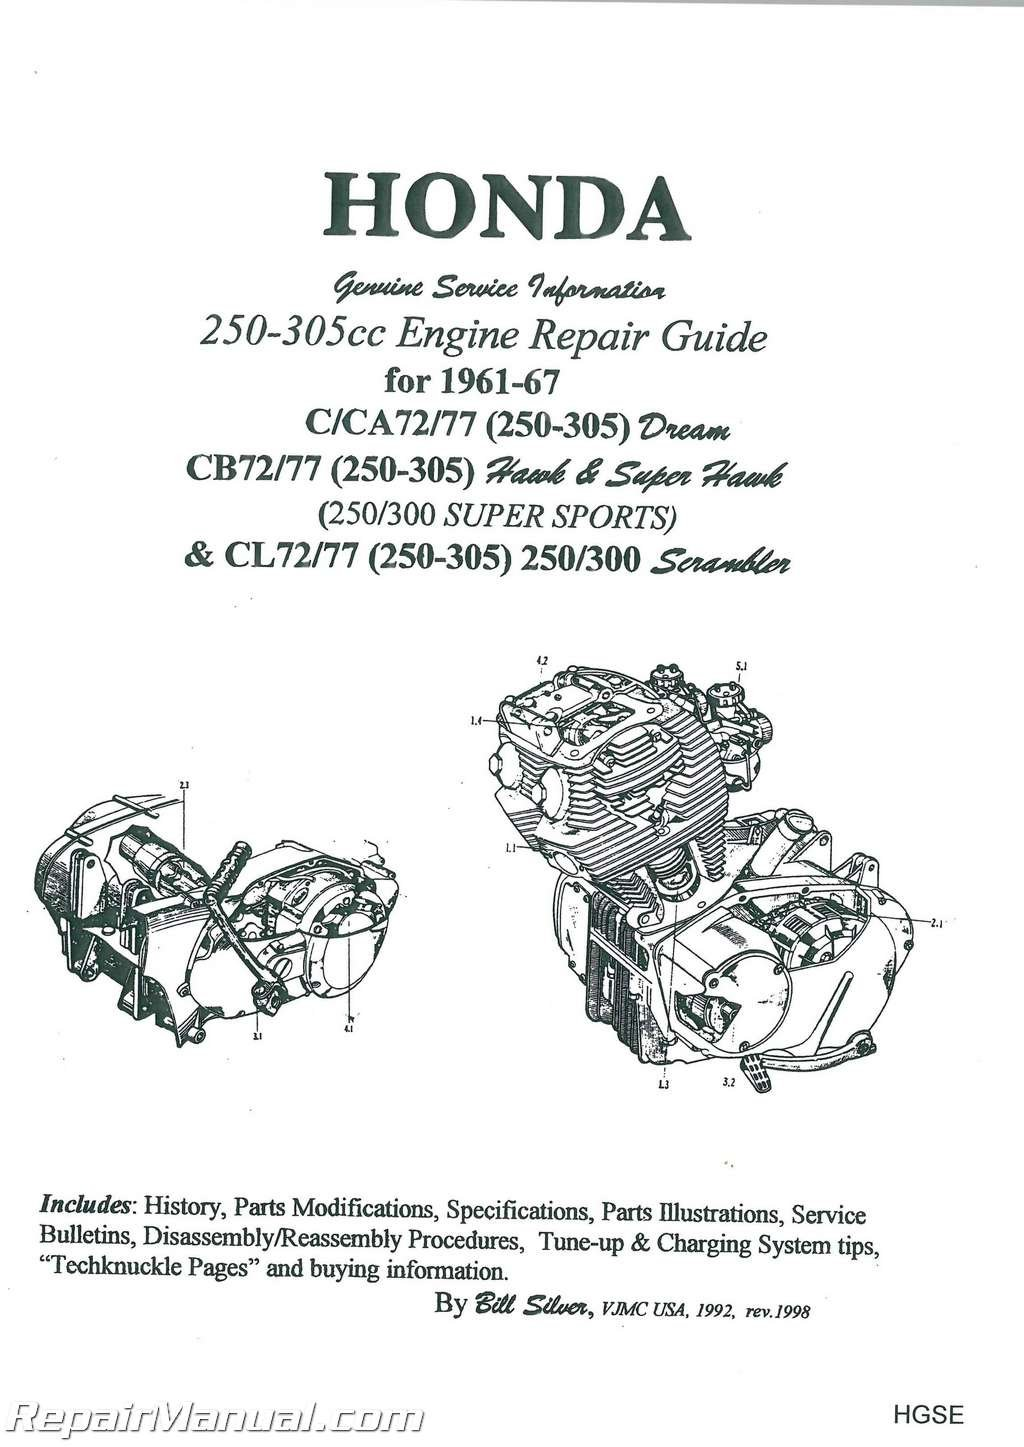 HGSE Honda 250-305cc Dream Hawk Super Hawk Motorcycle Engine Repair Guide  by Bill Silver: Manufacturer: Amazon.com: Books